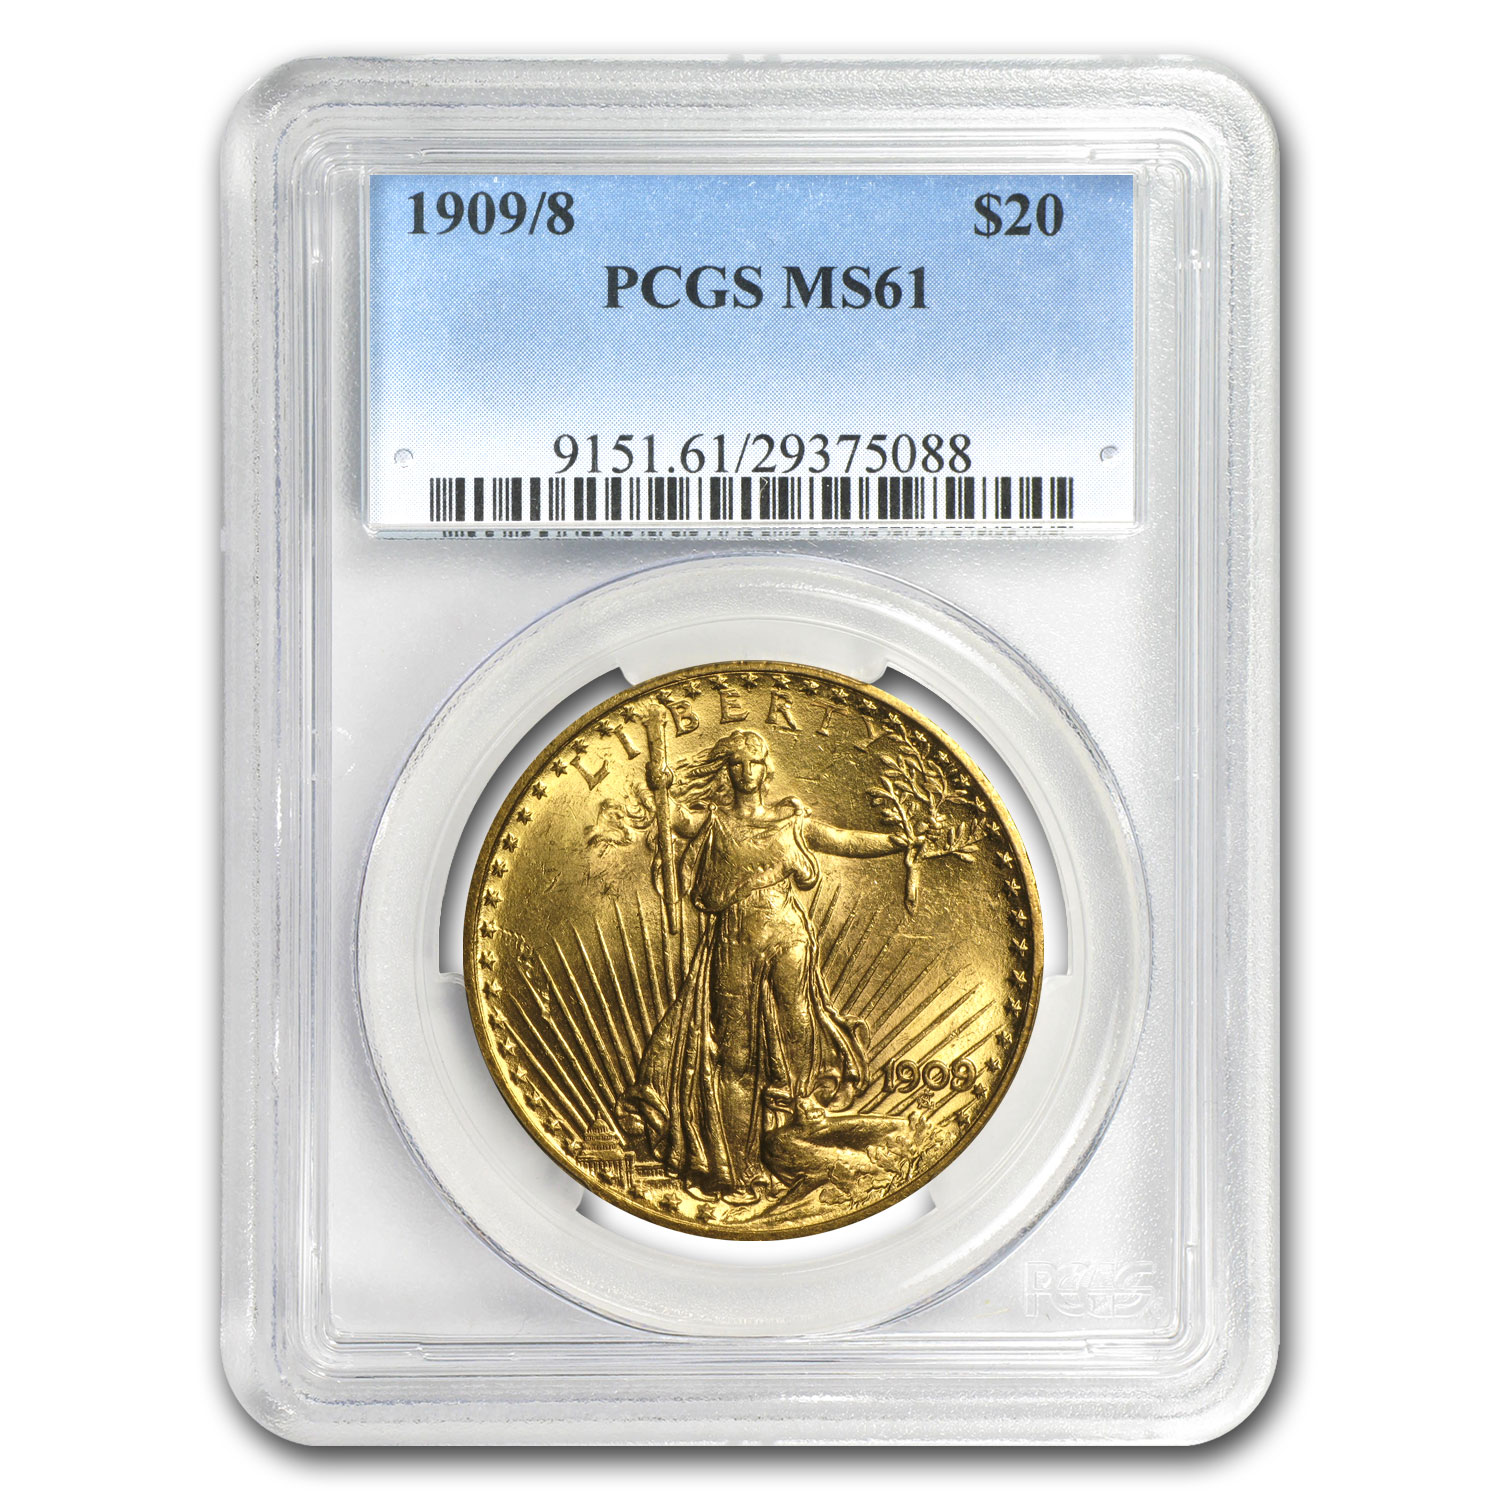 1909/8 $20 St. Gaudens Gold Double Eagle - Overdate - MS-61 PCGS